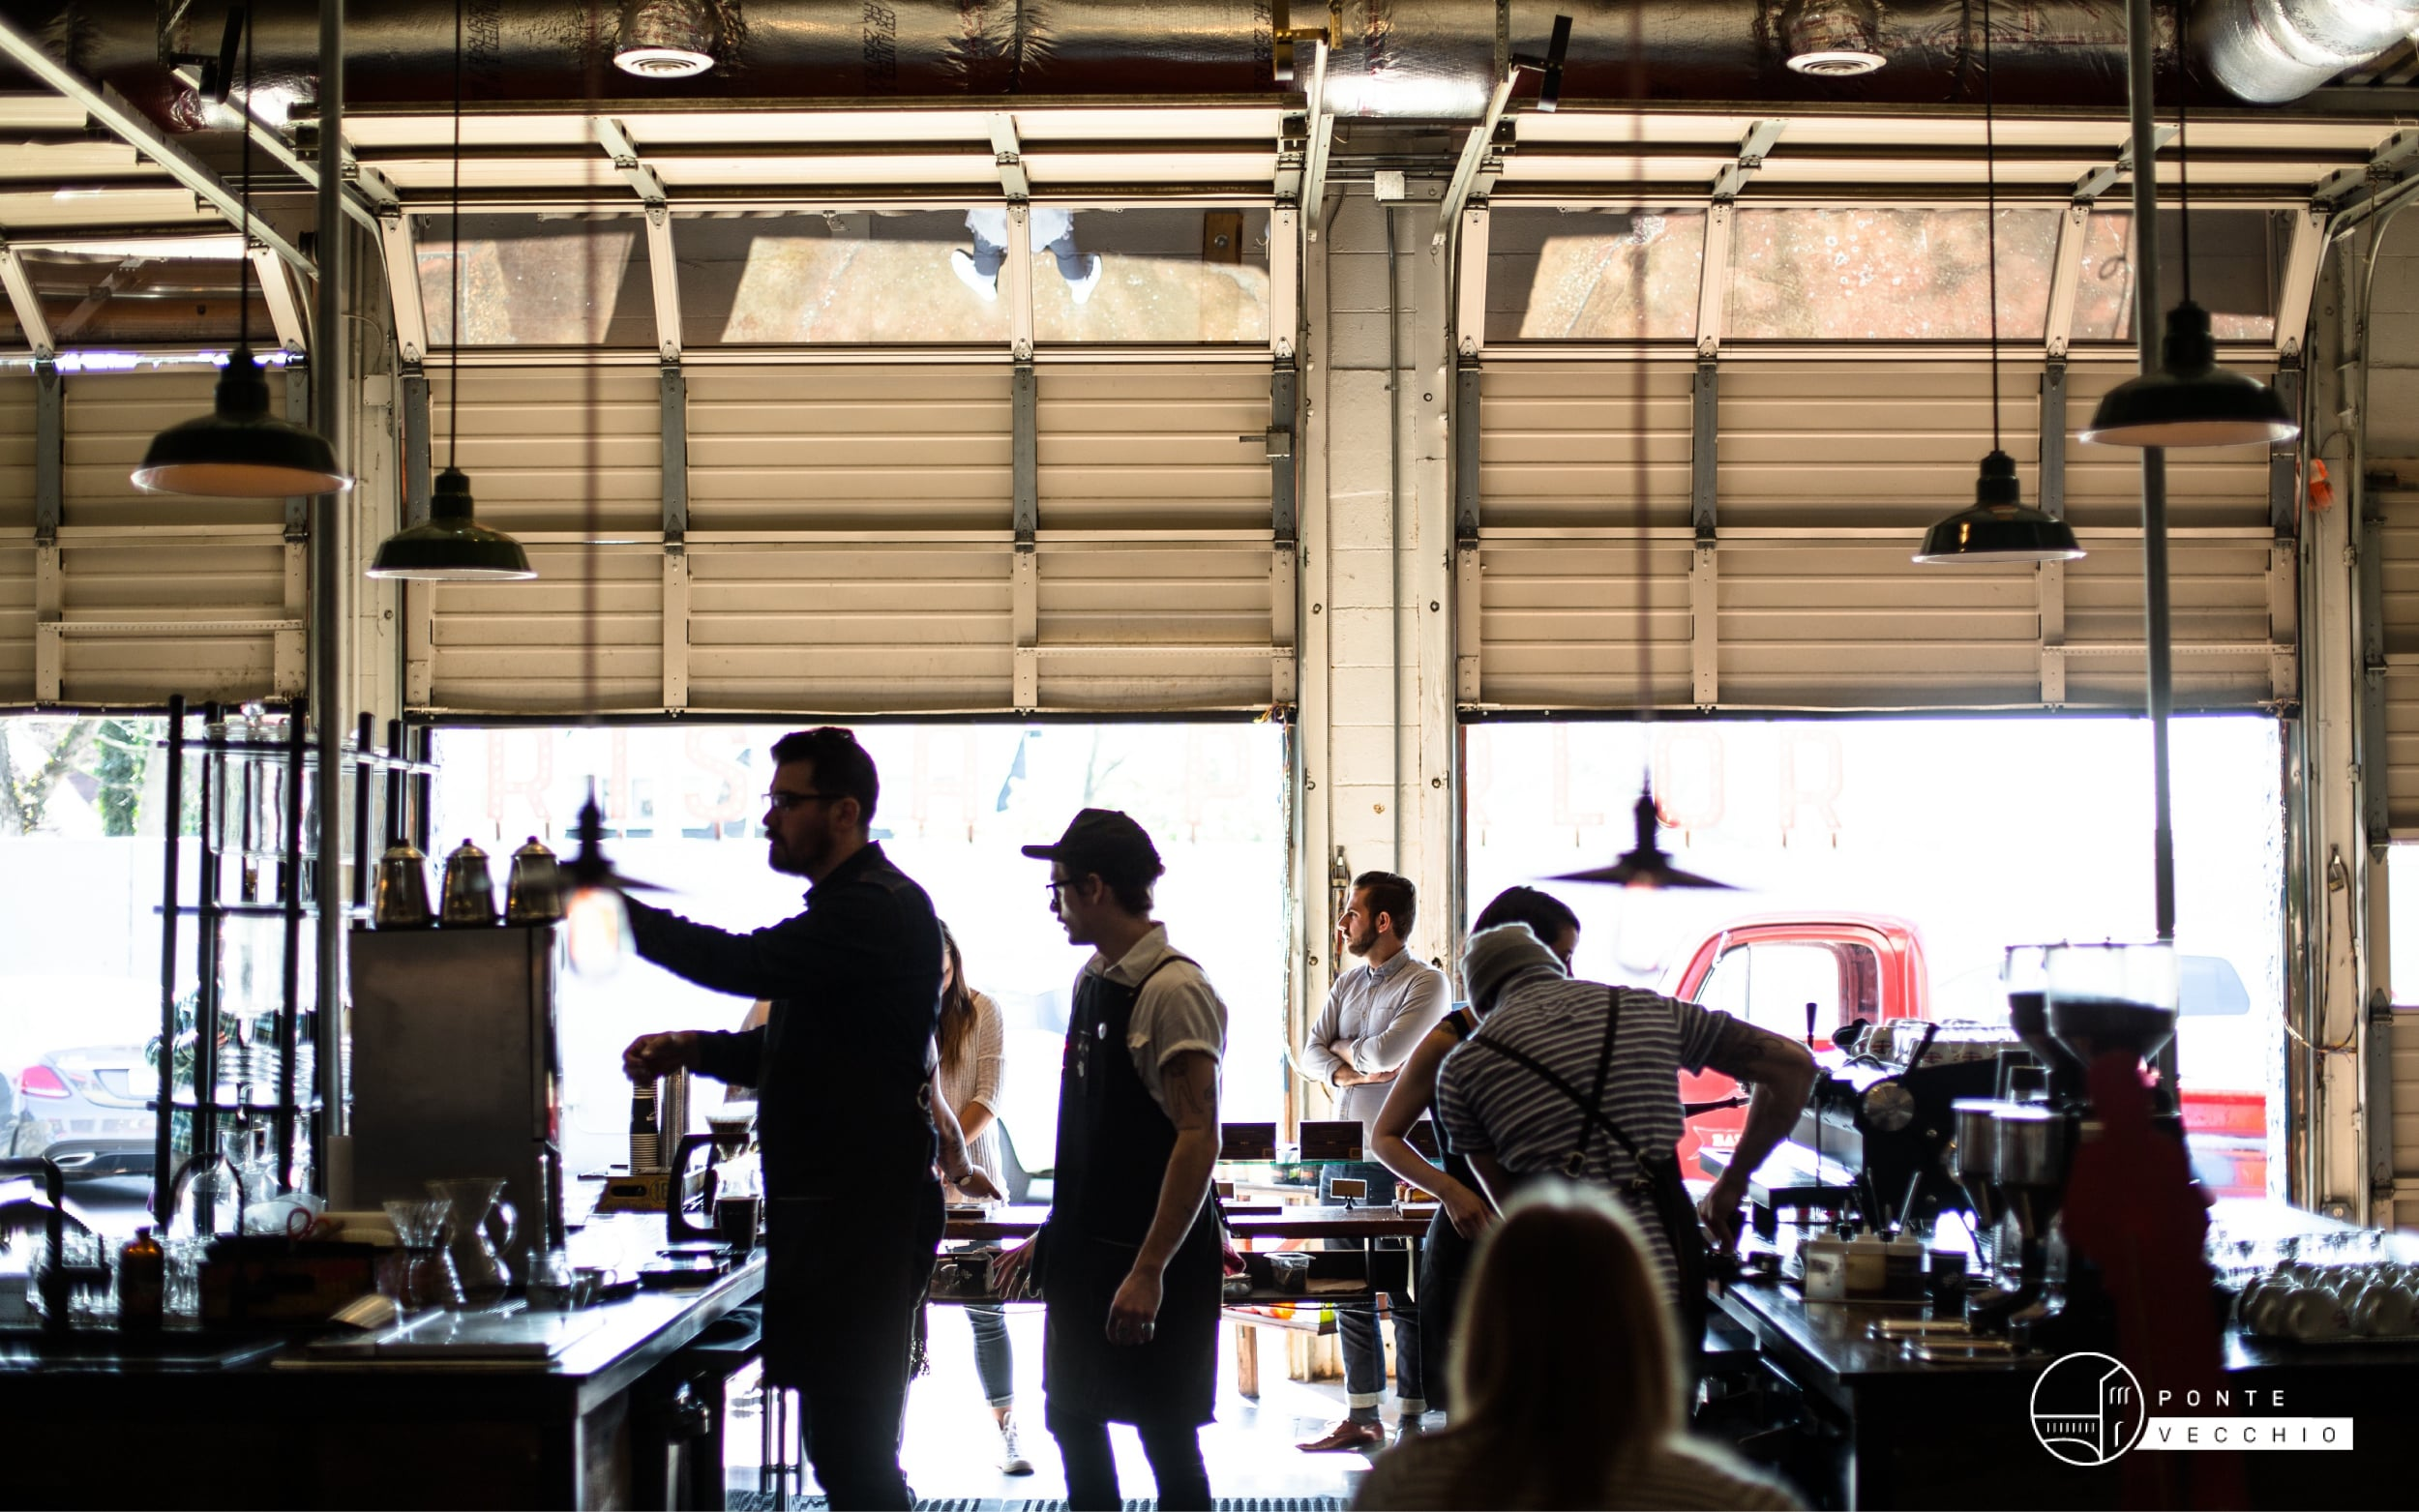 Is a lever coffee machine the right choice for a coffee bar?